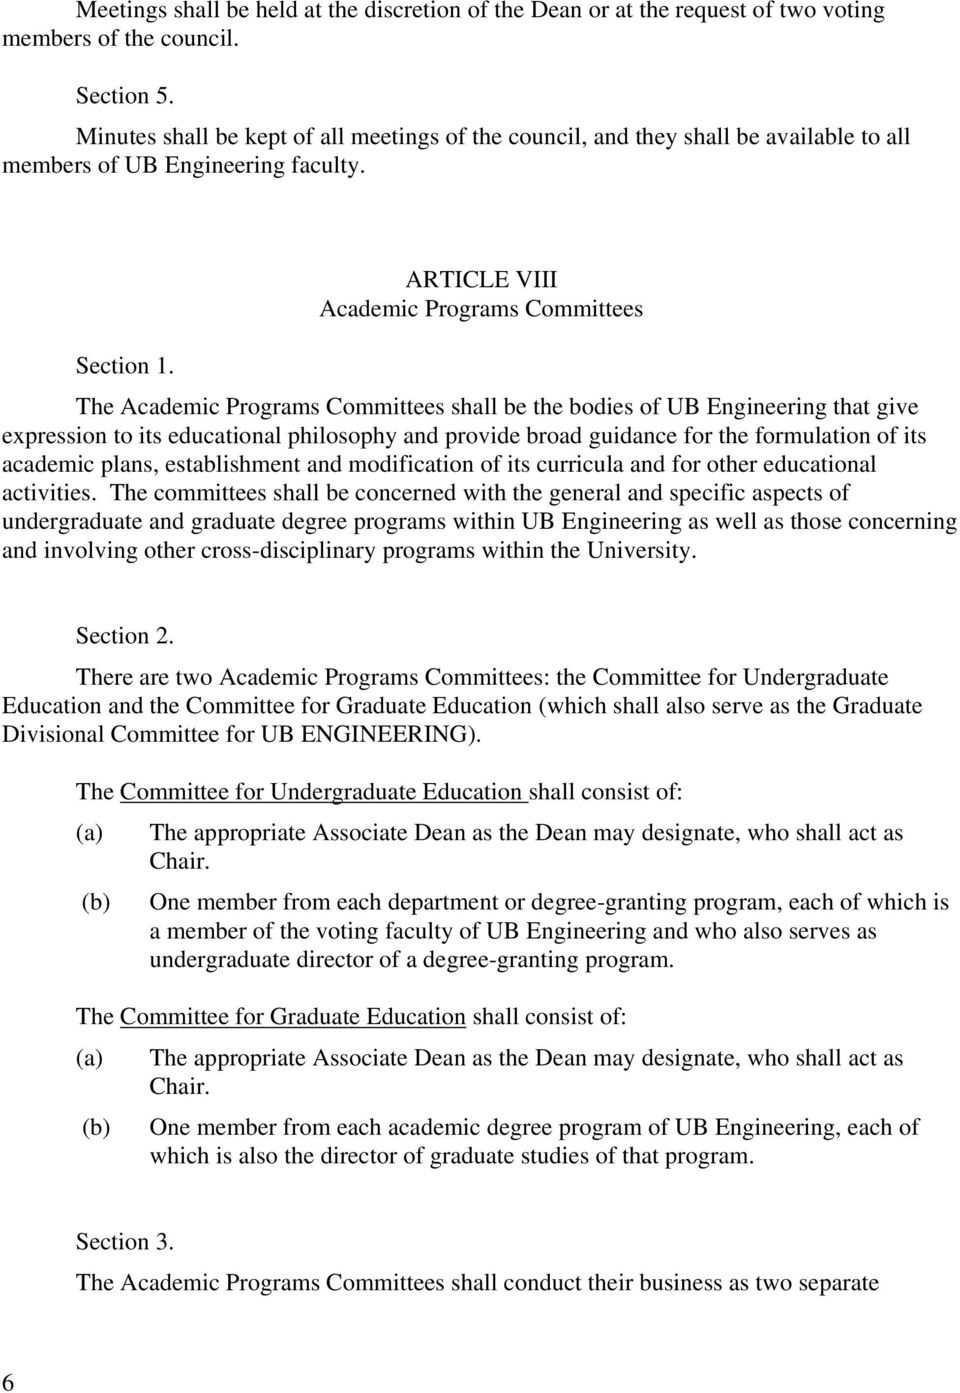 ARTICLE VIII Academic Programs Committees The Academic Programs Committees shall be the bodies of UB Engineering that give expression to its educational philosophy and provide broad guidance for the